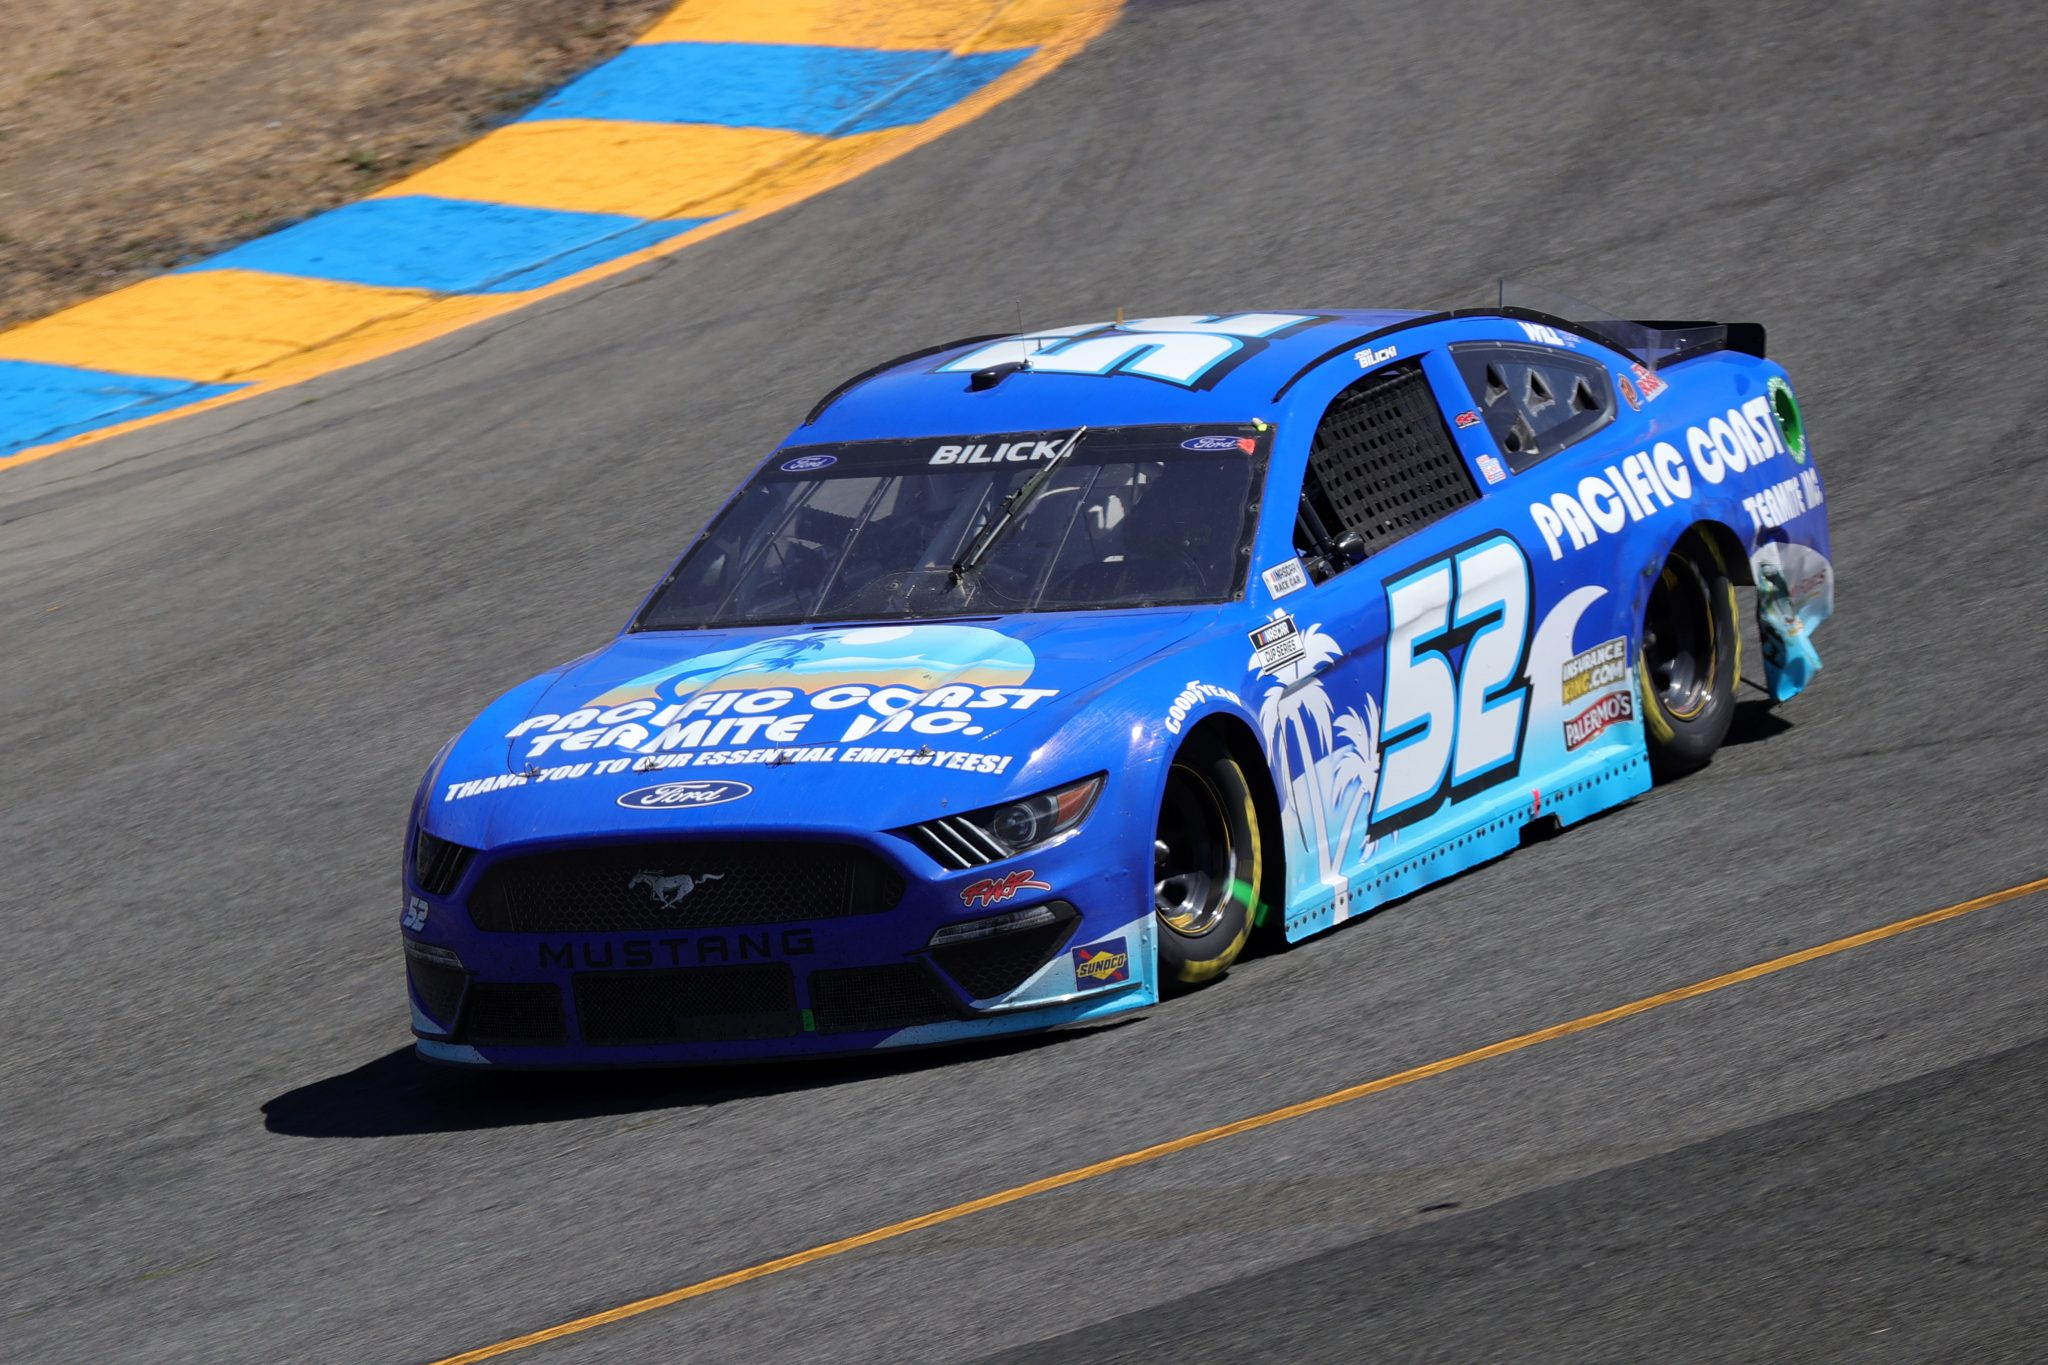 SONOMA, CALIFORNIA - JUNE 06: Josh Bilicki, driver of the #52 Pacific Coast Termite, Inc. Ford, drives during the NASCAR Cup Series Toyota/Save Mart 350 at Sonoma Raceway on June 06, 2021 in Sonoma, California. (Photo by Carmen Mandato/Getty Images) | Getty Images